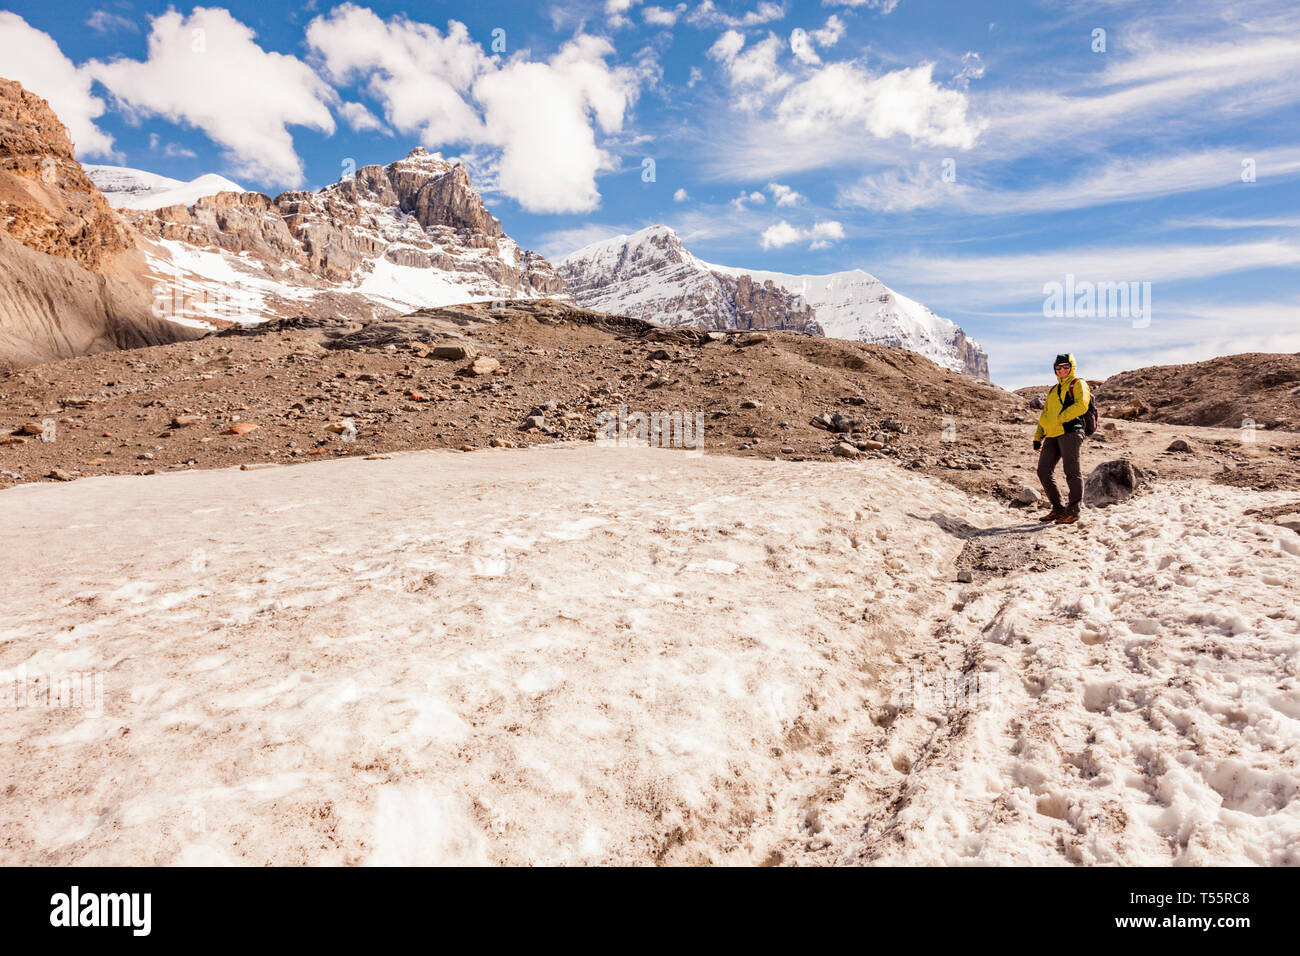 Woman on Athabasca Glacier in Jasper National Park, Alberta, Canada - Stock Image